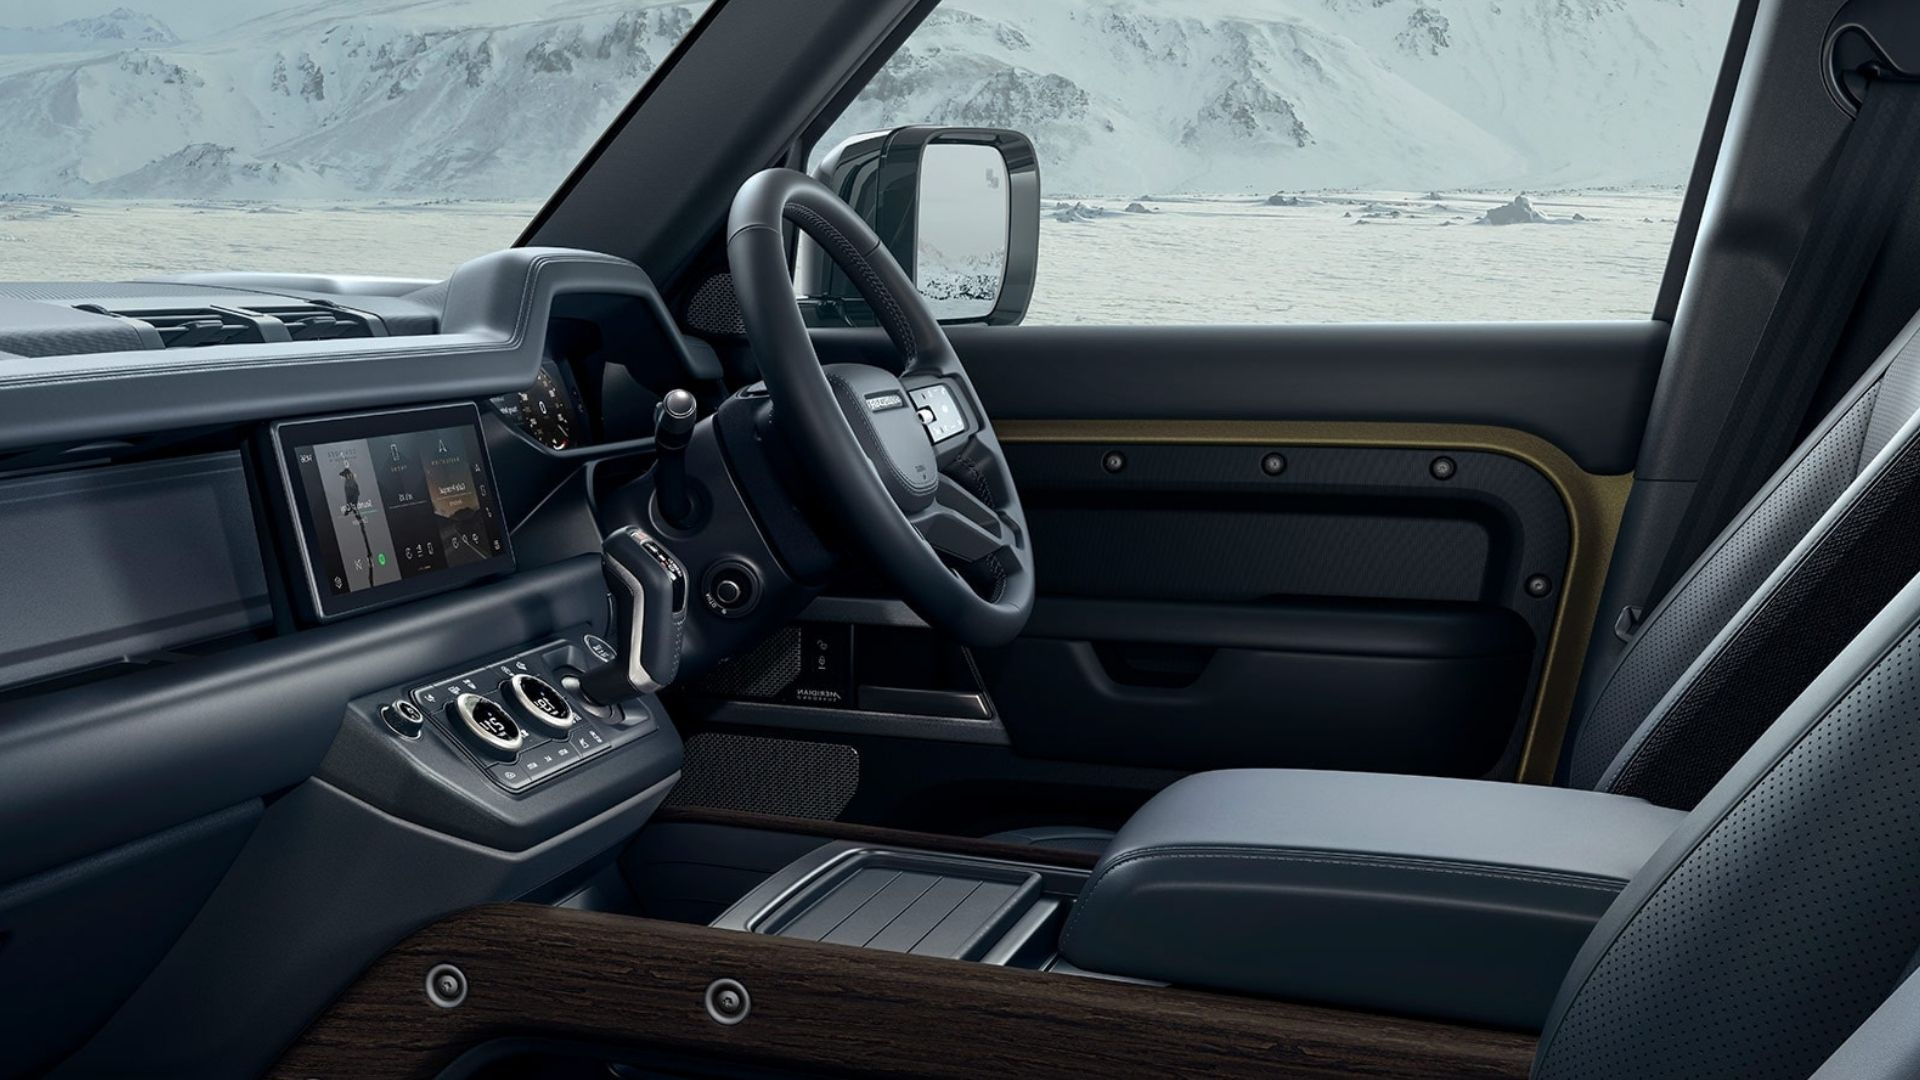 Land Rover Defender Interior Features